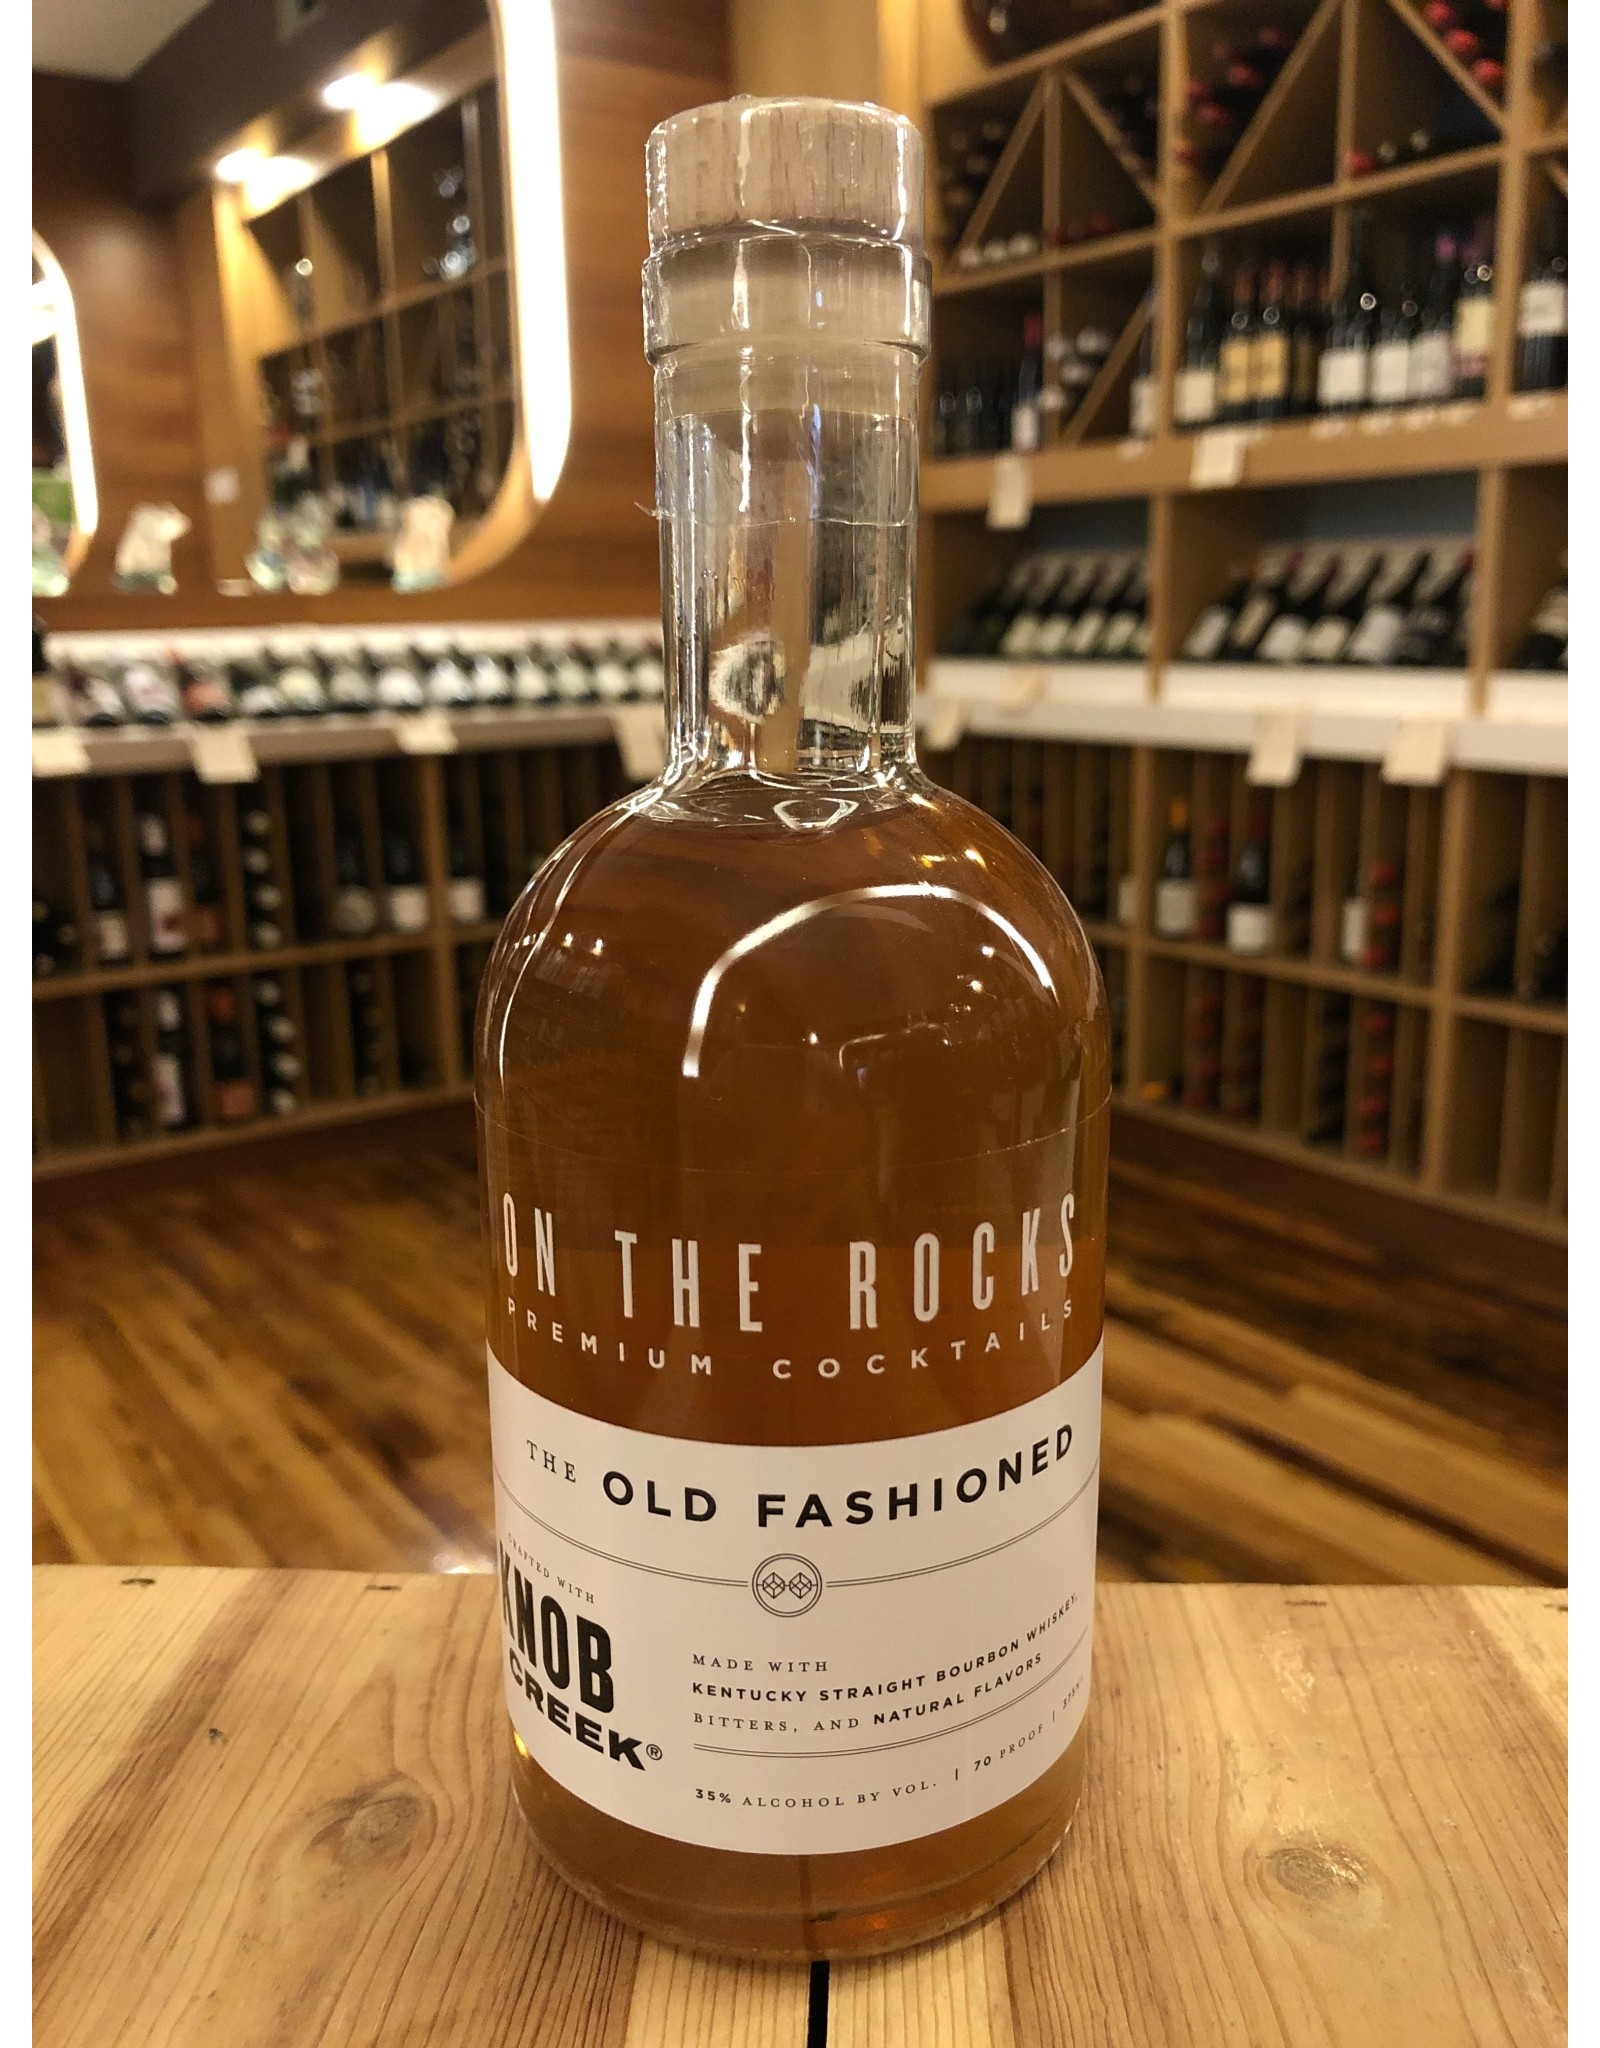 On The Rocks Old Fashioned - 375 ML